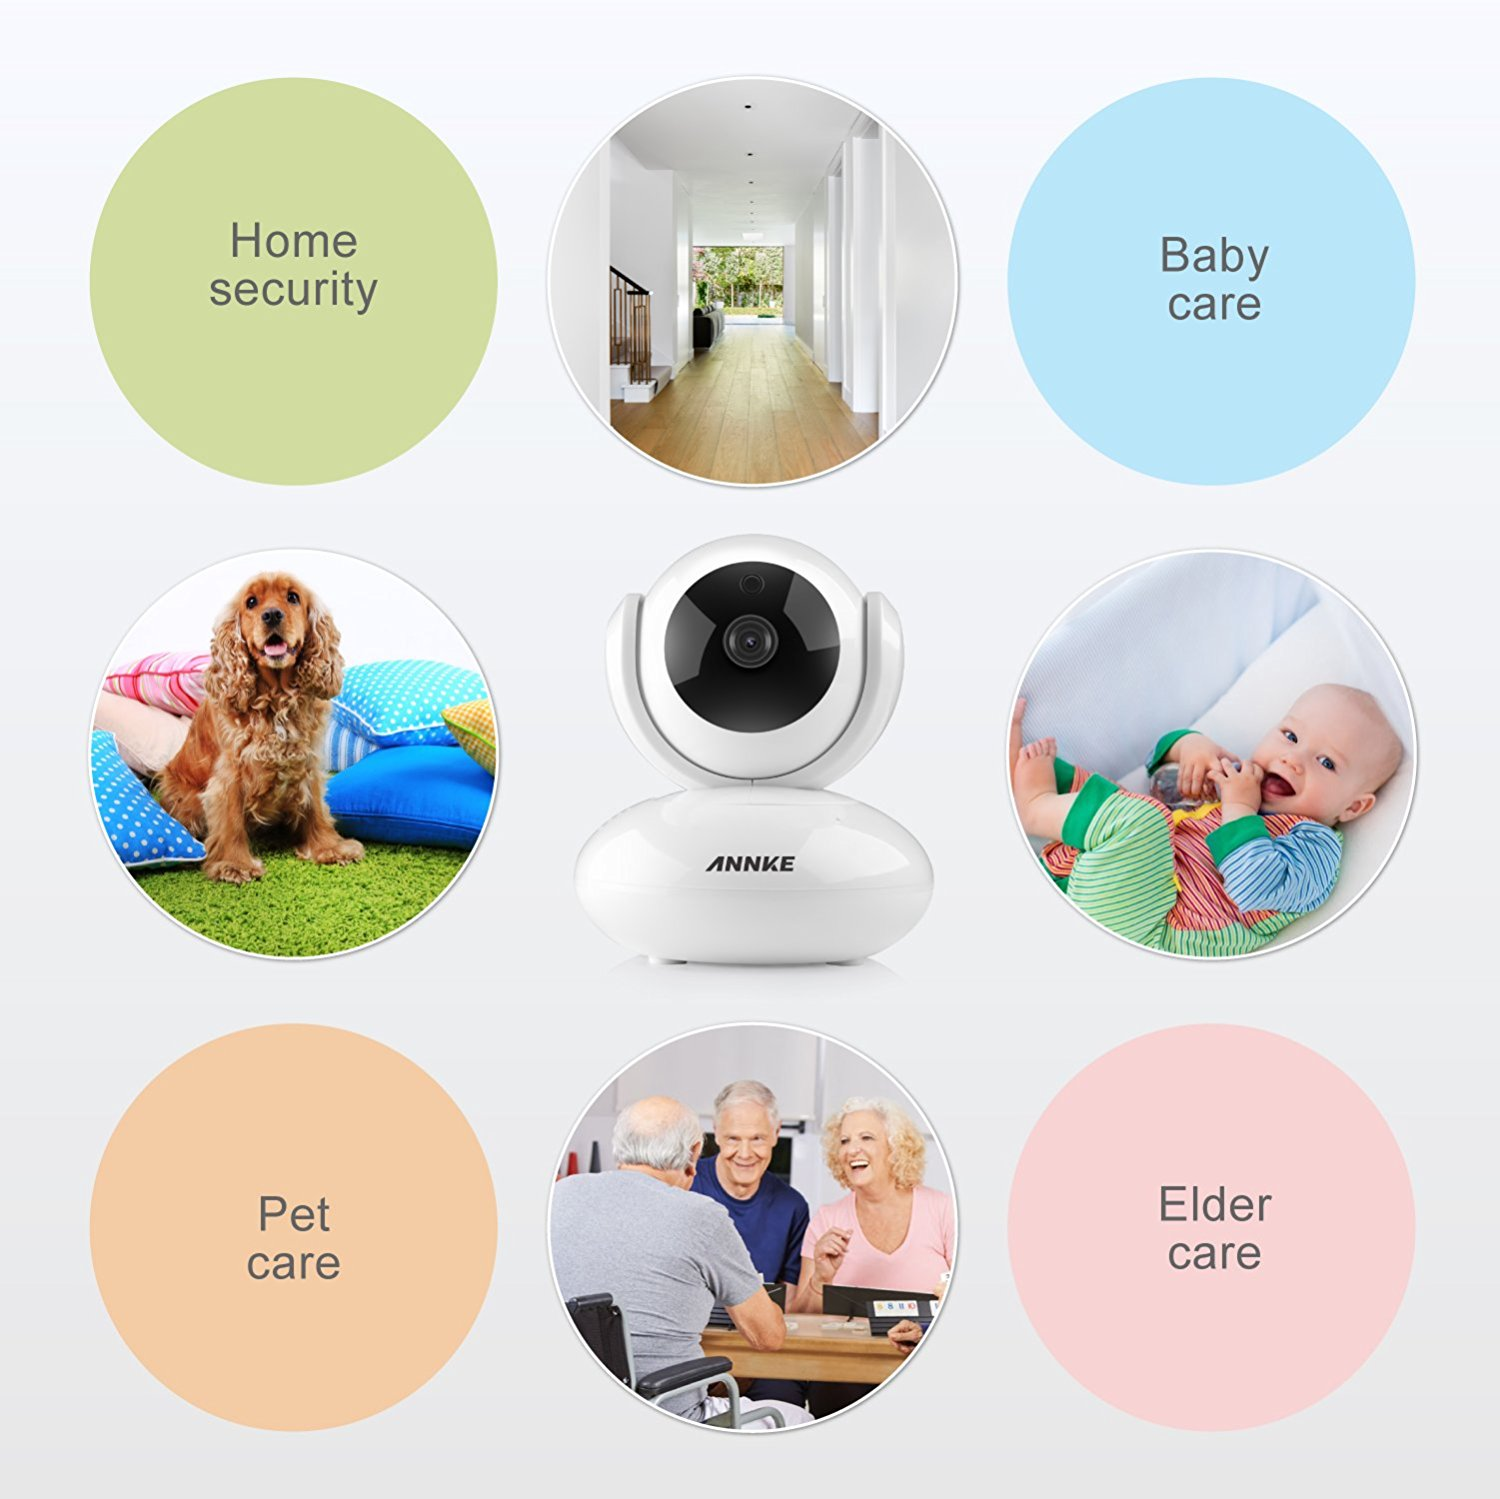 ANNKE's 1080p pan/tilt IP camera is an Amazon Deal of the